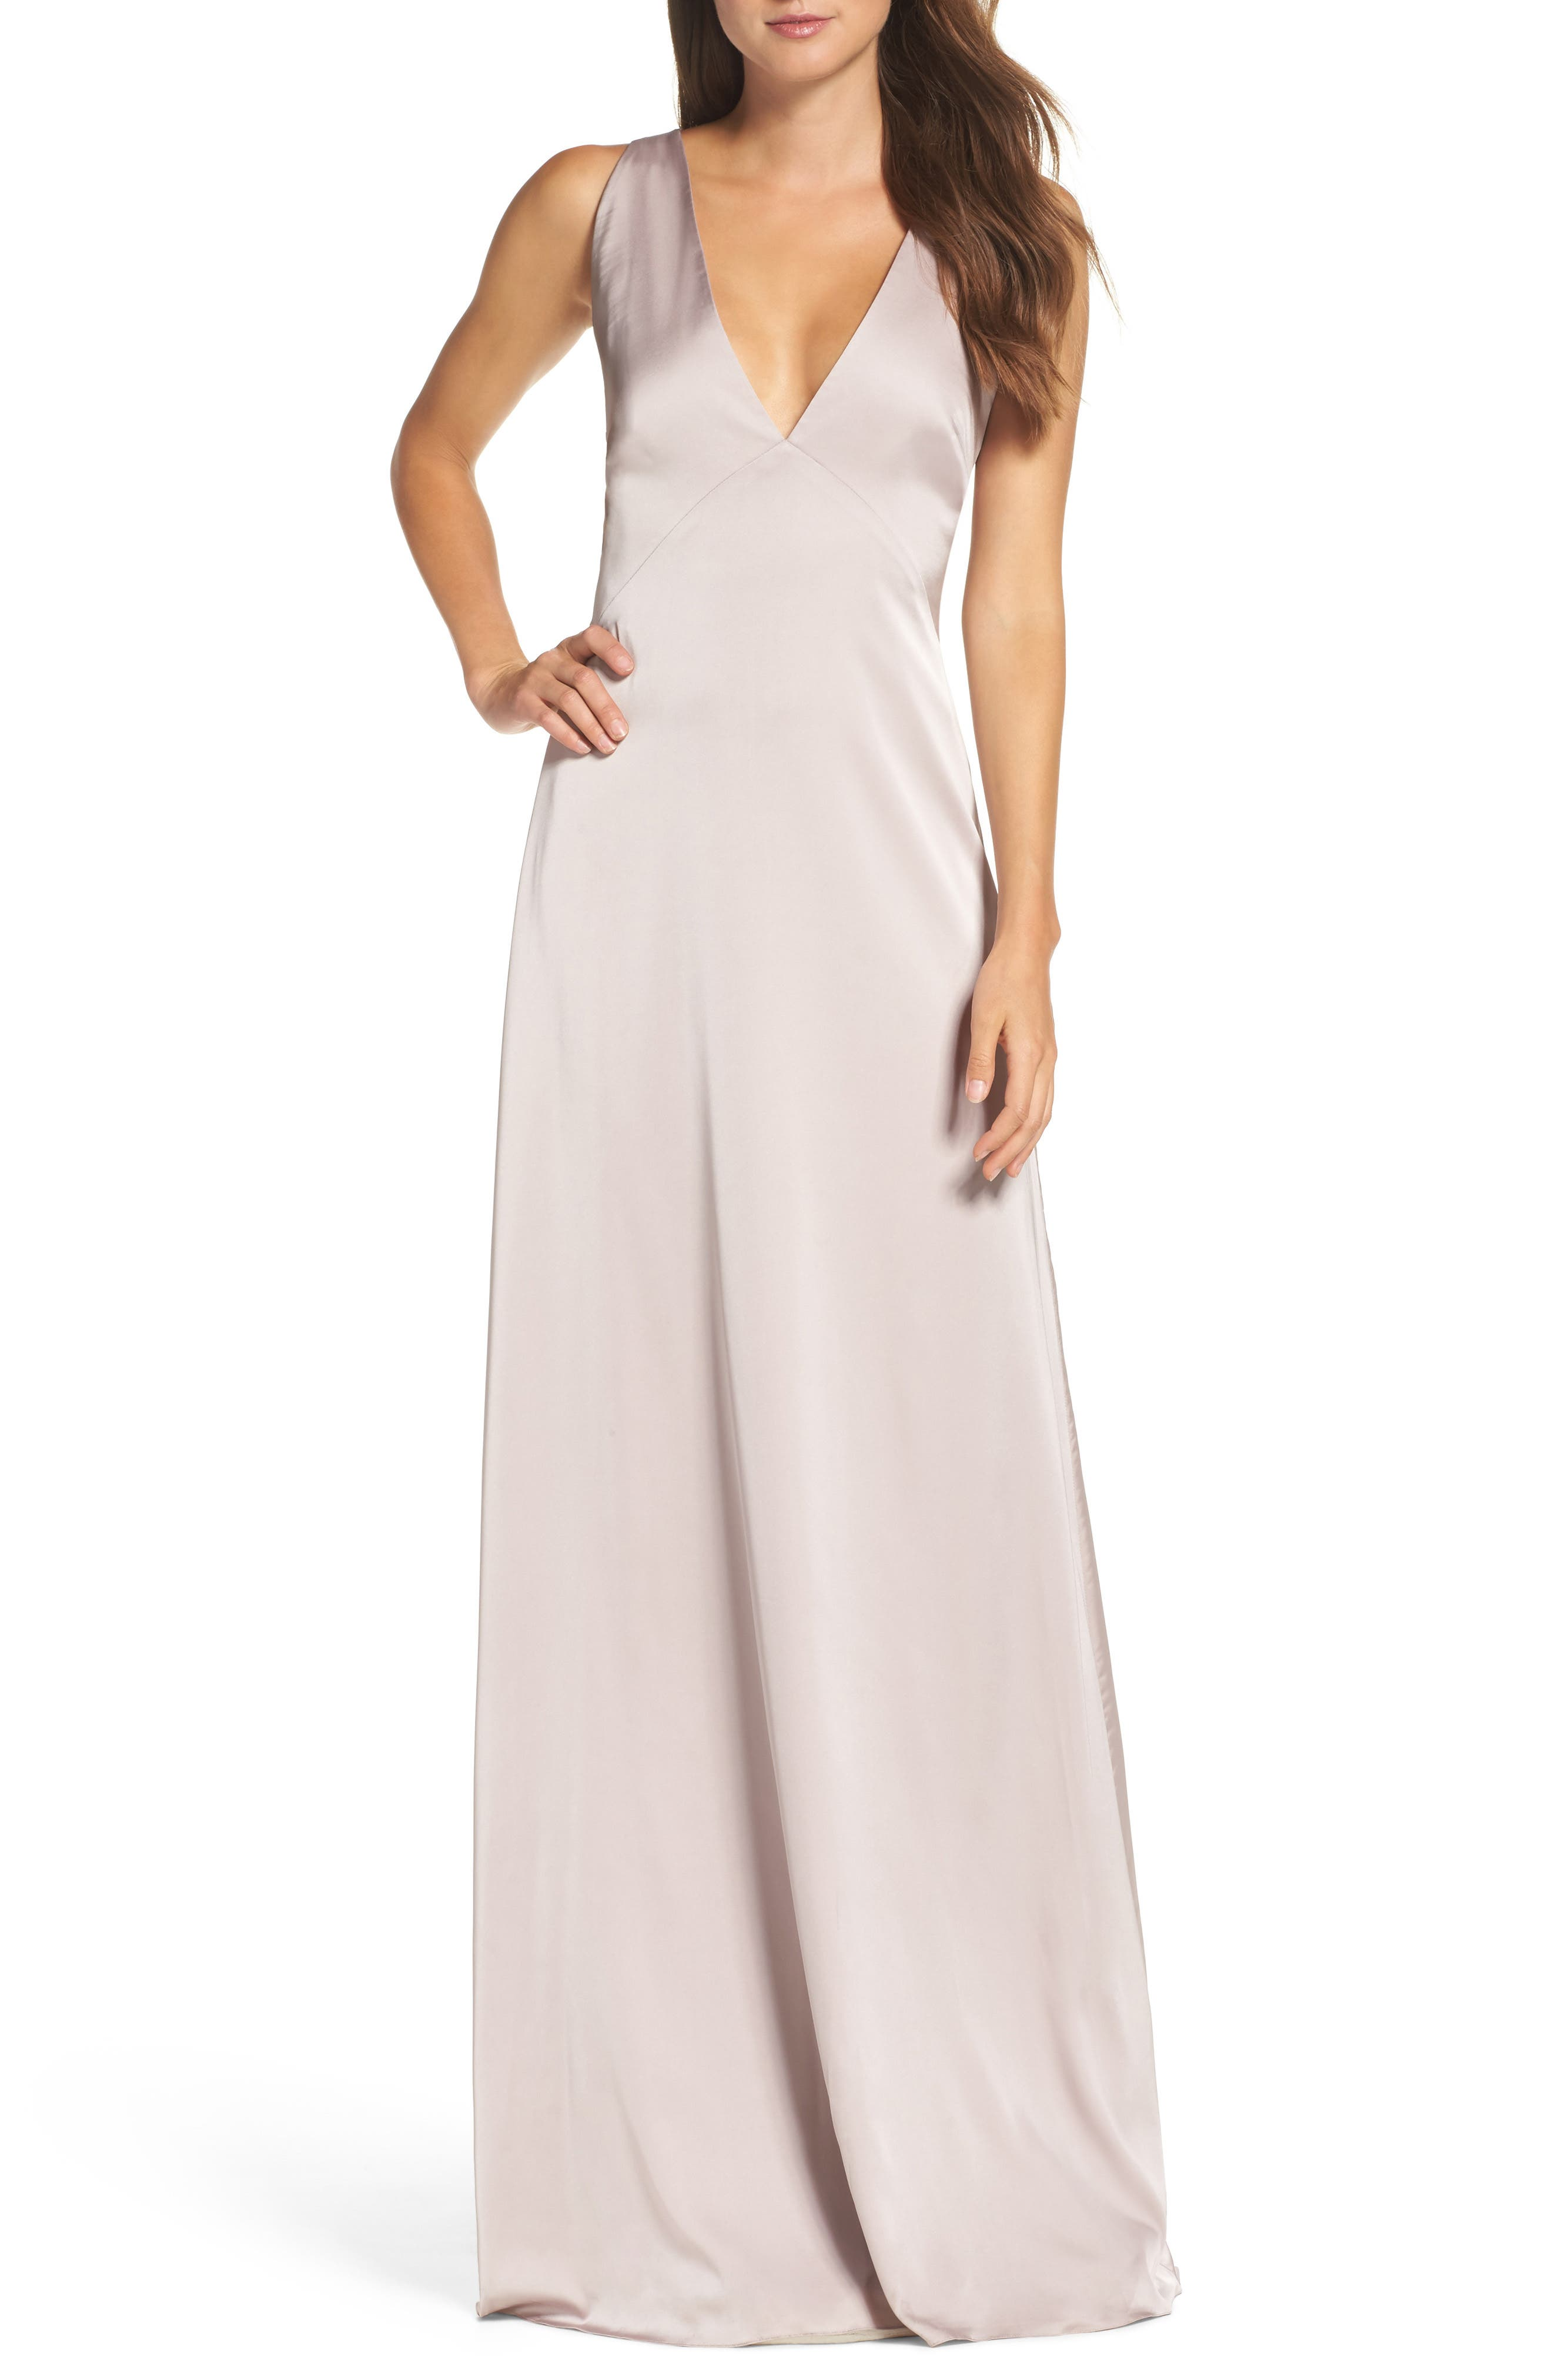 Monique Lhuillier Bridesmaids Dasha Tie Back Sateen Gown (Nordstrom Exclusive)